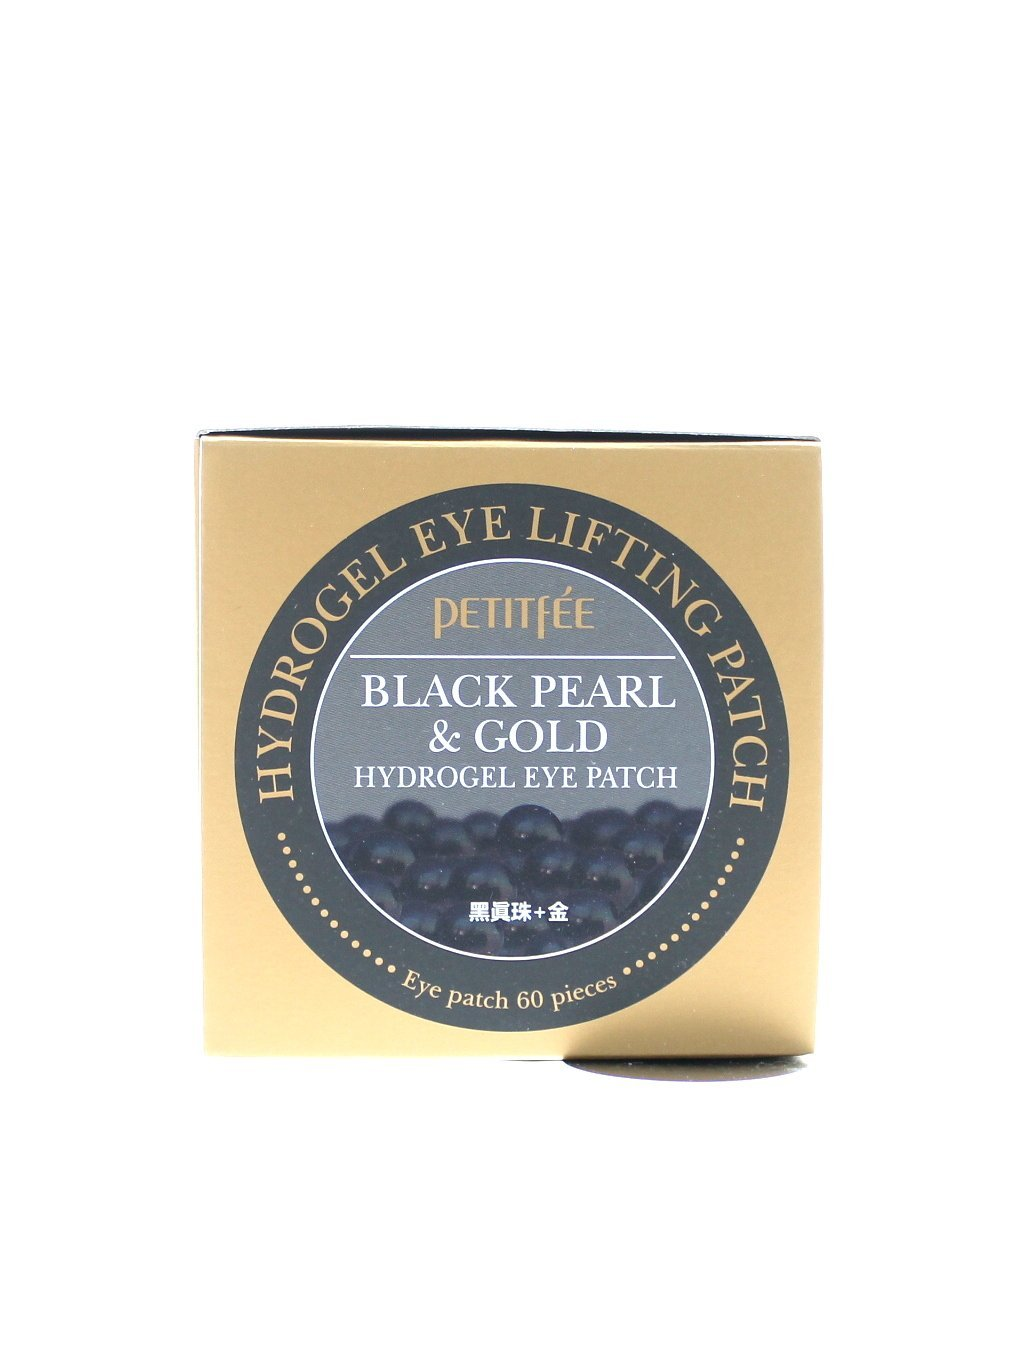 Petitfee Black Pearl and Gold Hydrogel Eye Patch, 60 Sheet petitfee-BlackPearlGold